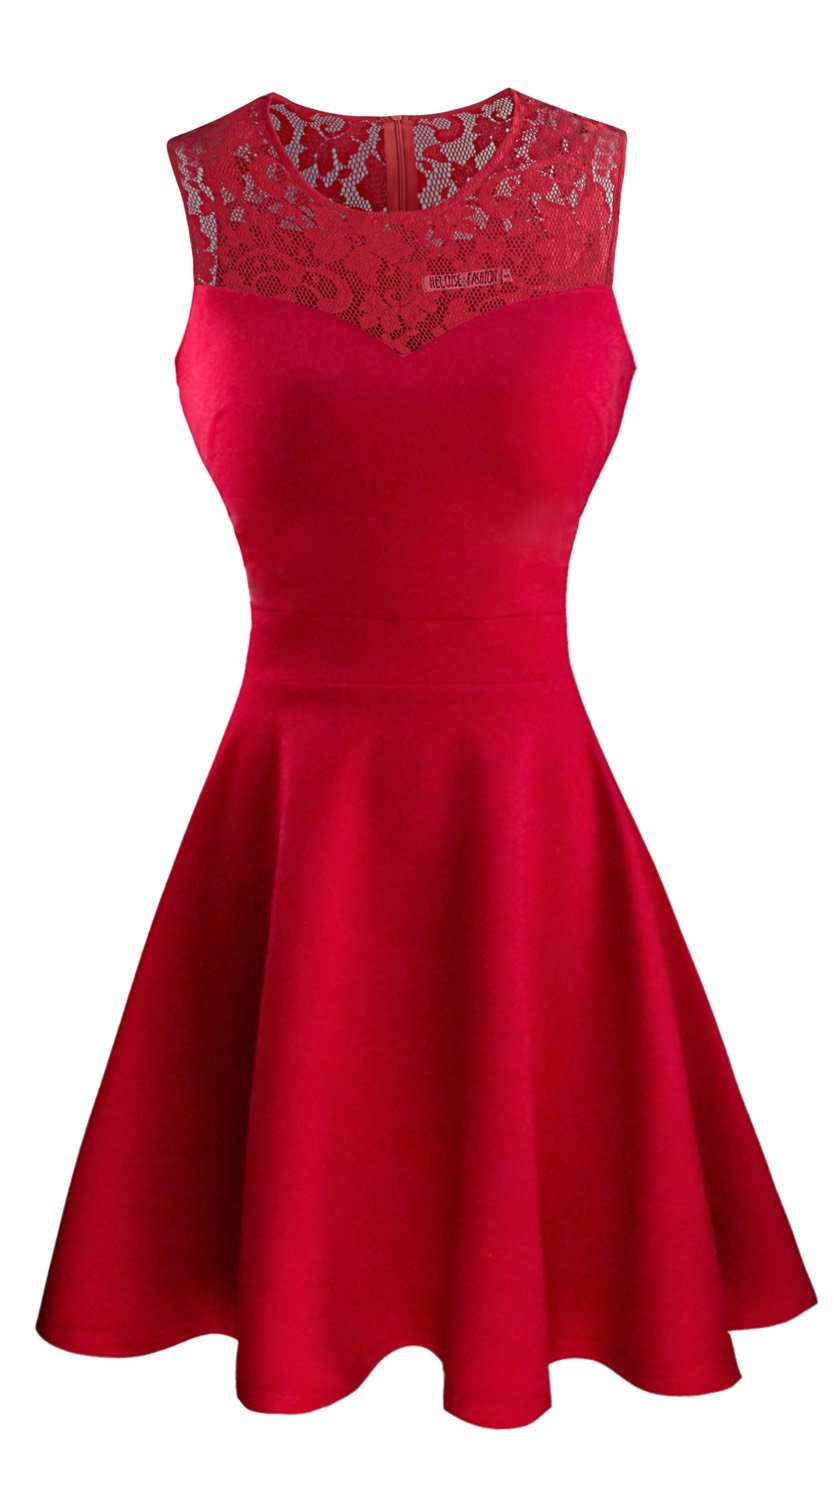 Sylvestidoso Women's A-Line Sleeveless Pleated Little Red Cocktail Party Dress with Floral Lace (XXL, Red)